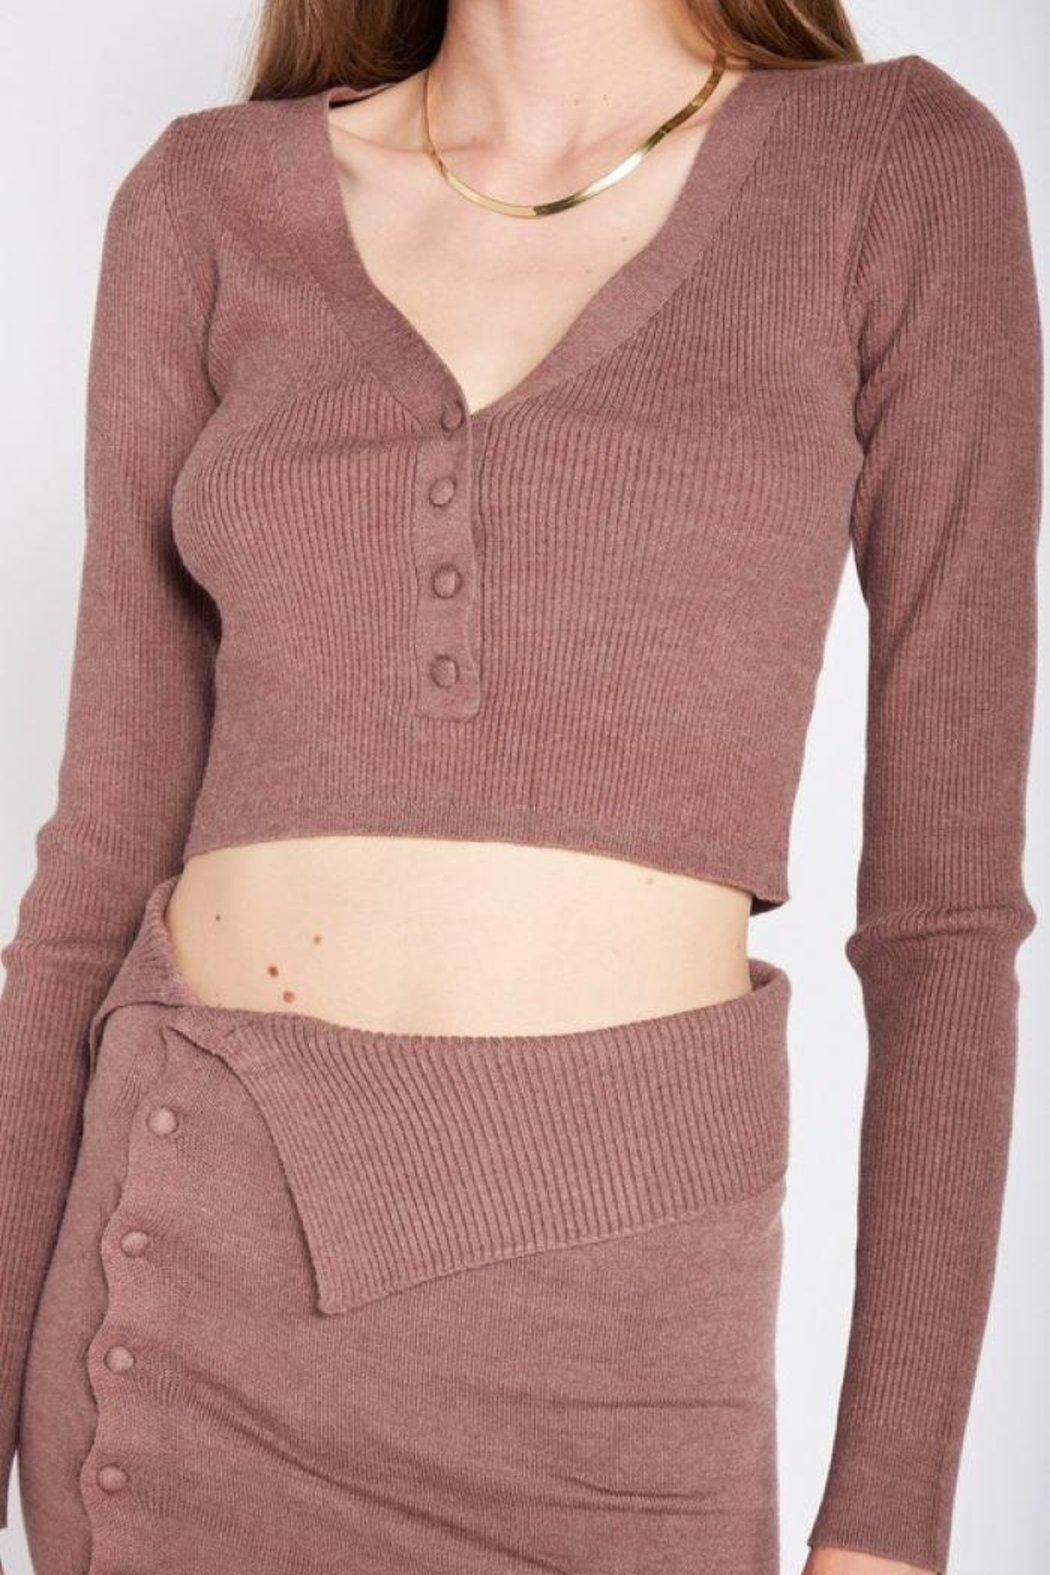 Emory Park Sweater Button Down Crop Top - Side Cropped Image